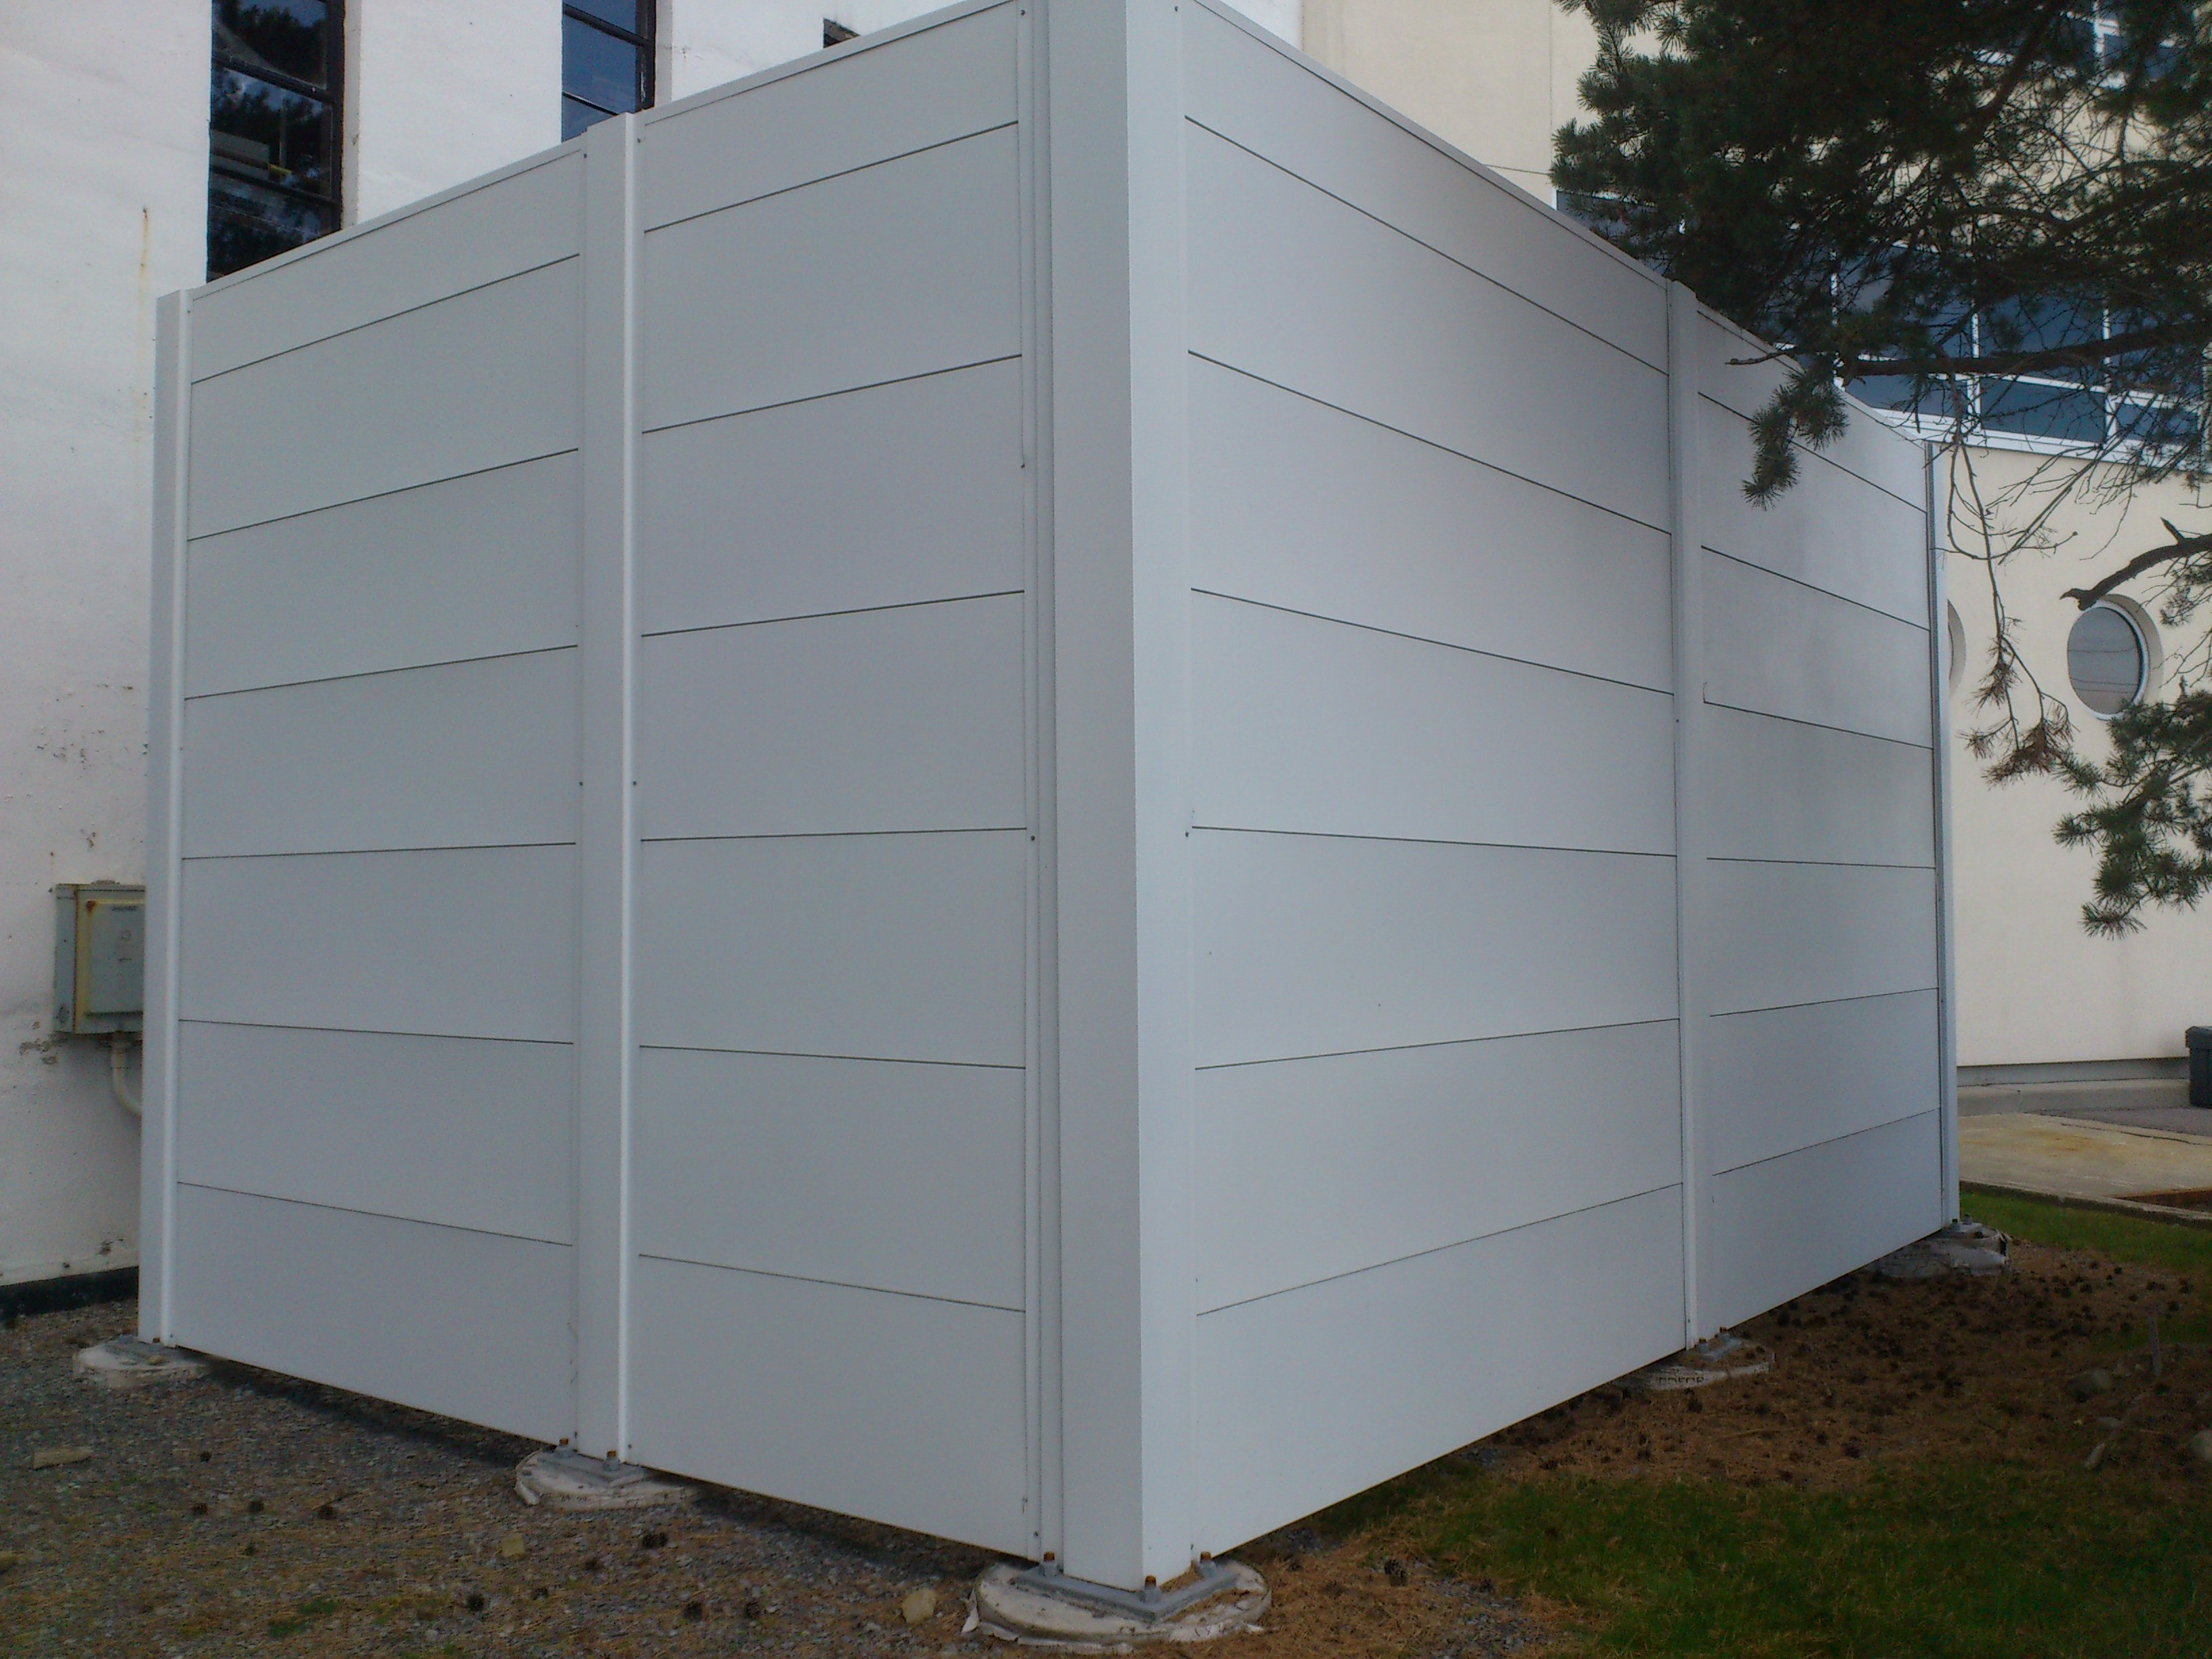 Chiller Unit Noise Barrier Wall Enclosure - Noise Wall